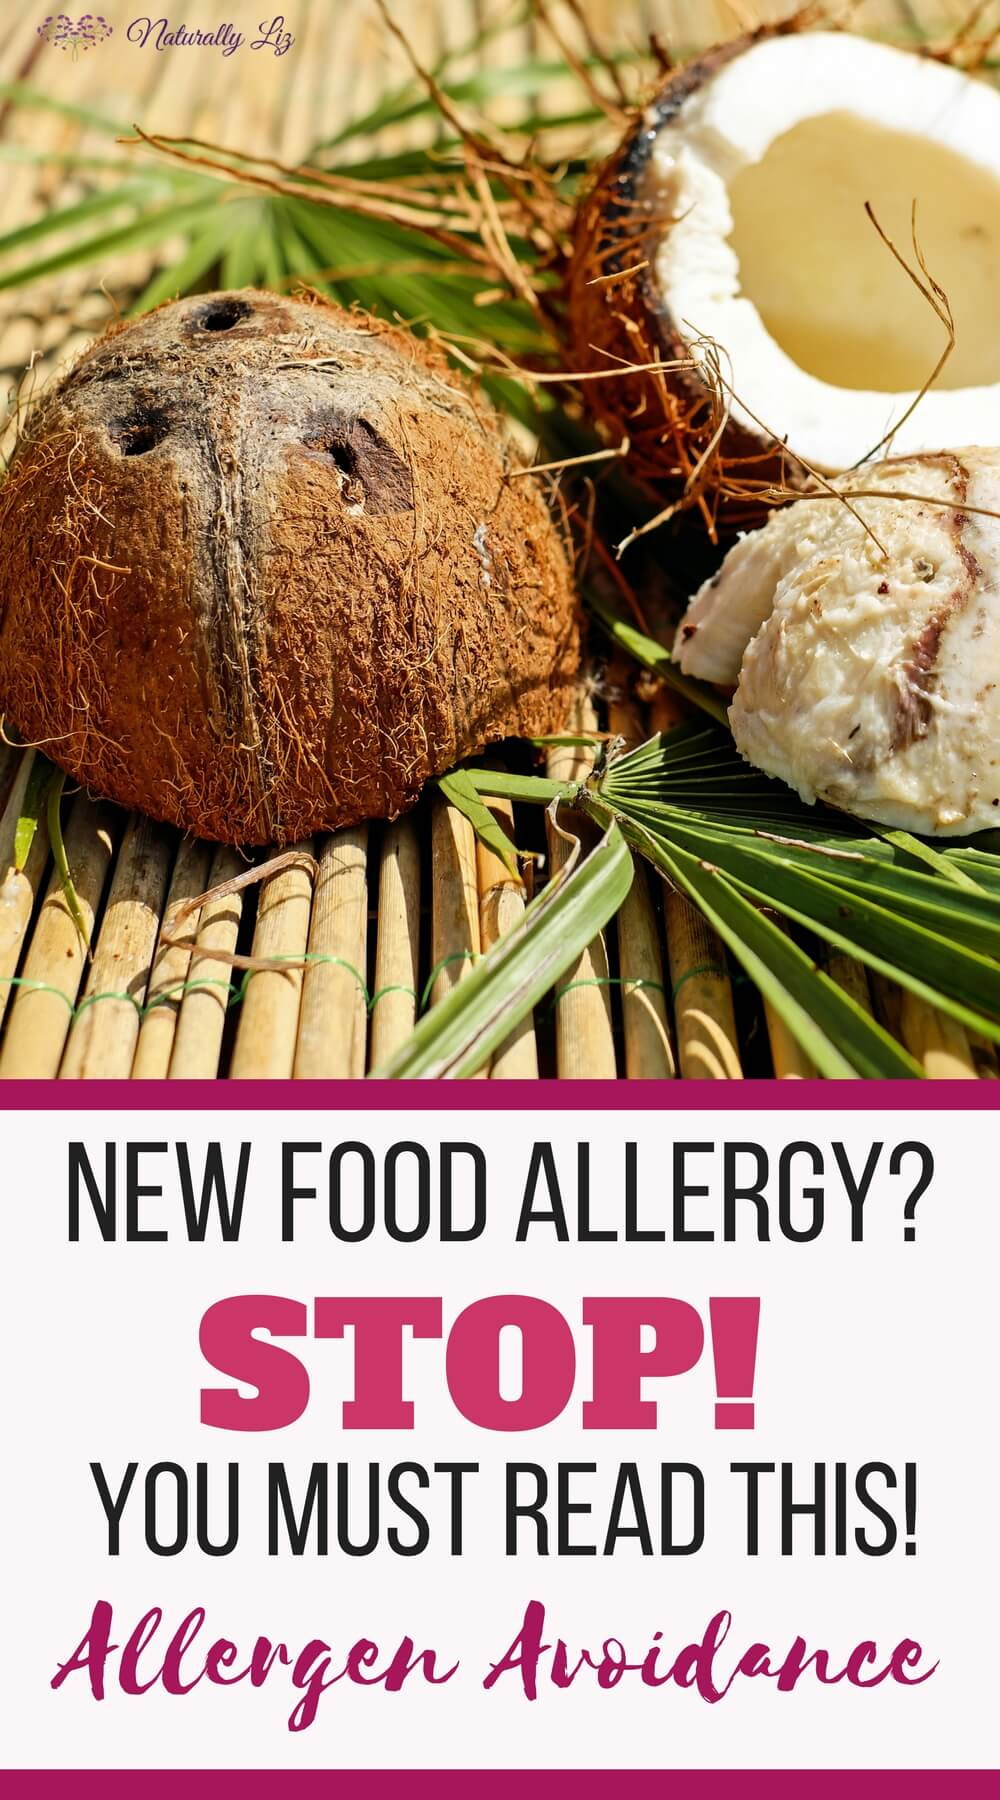 Stop! Read this! New food allergy